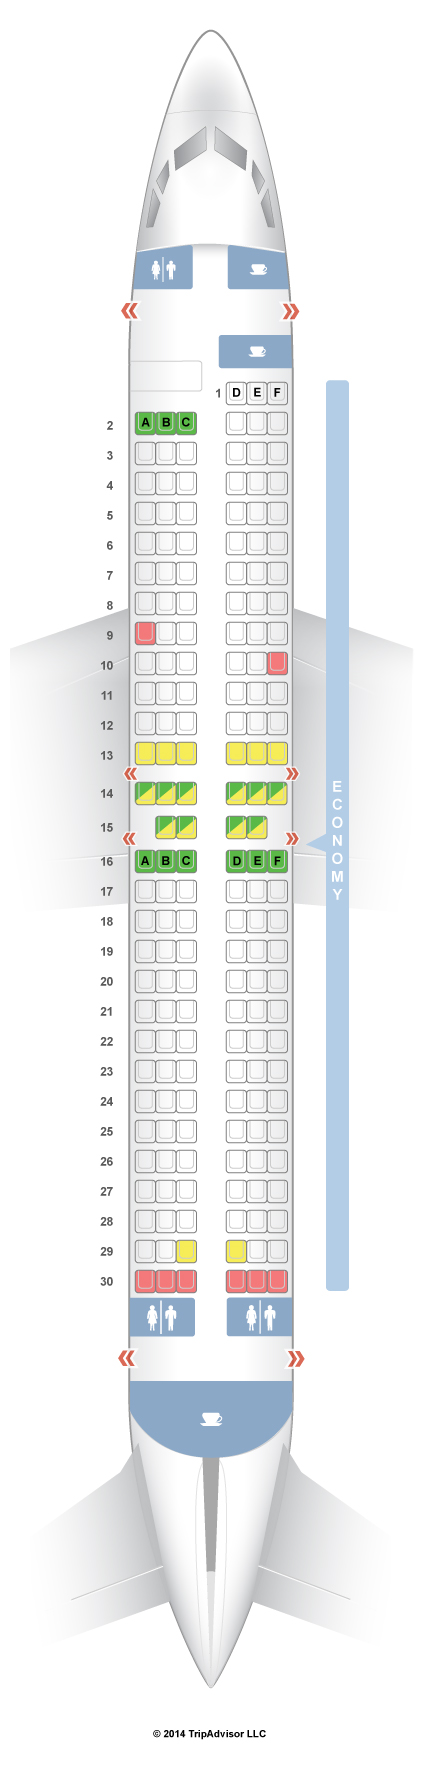 Southwest Seat Map SeatGuru Seat Map Southwest Boeing 737 800 (738) Southwest Seat Map